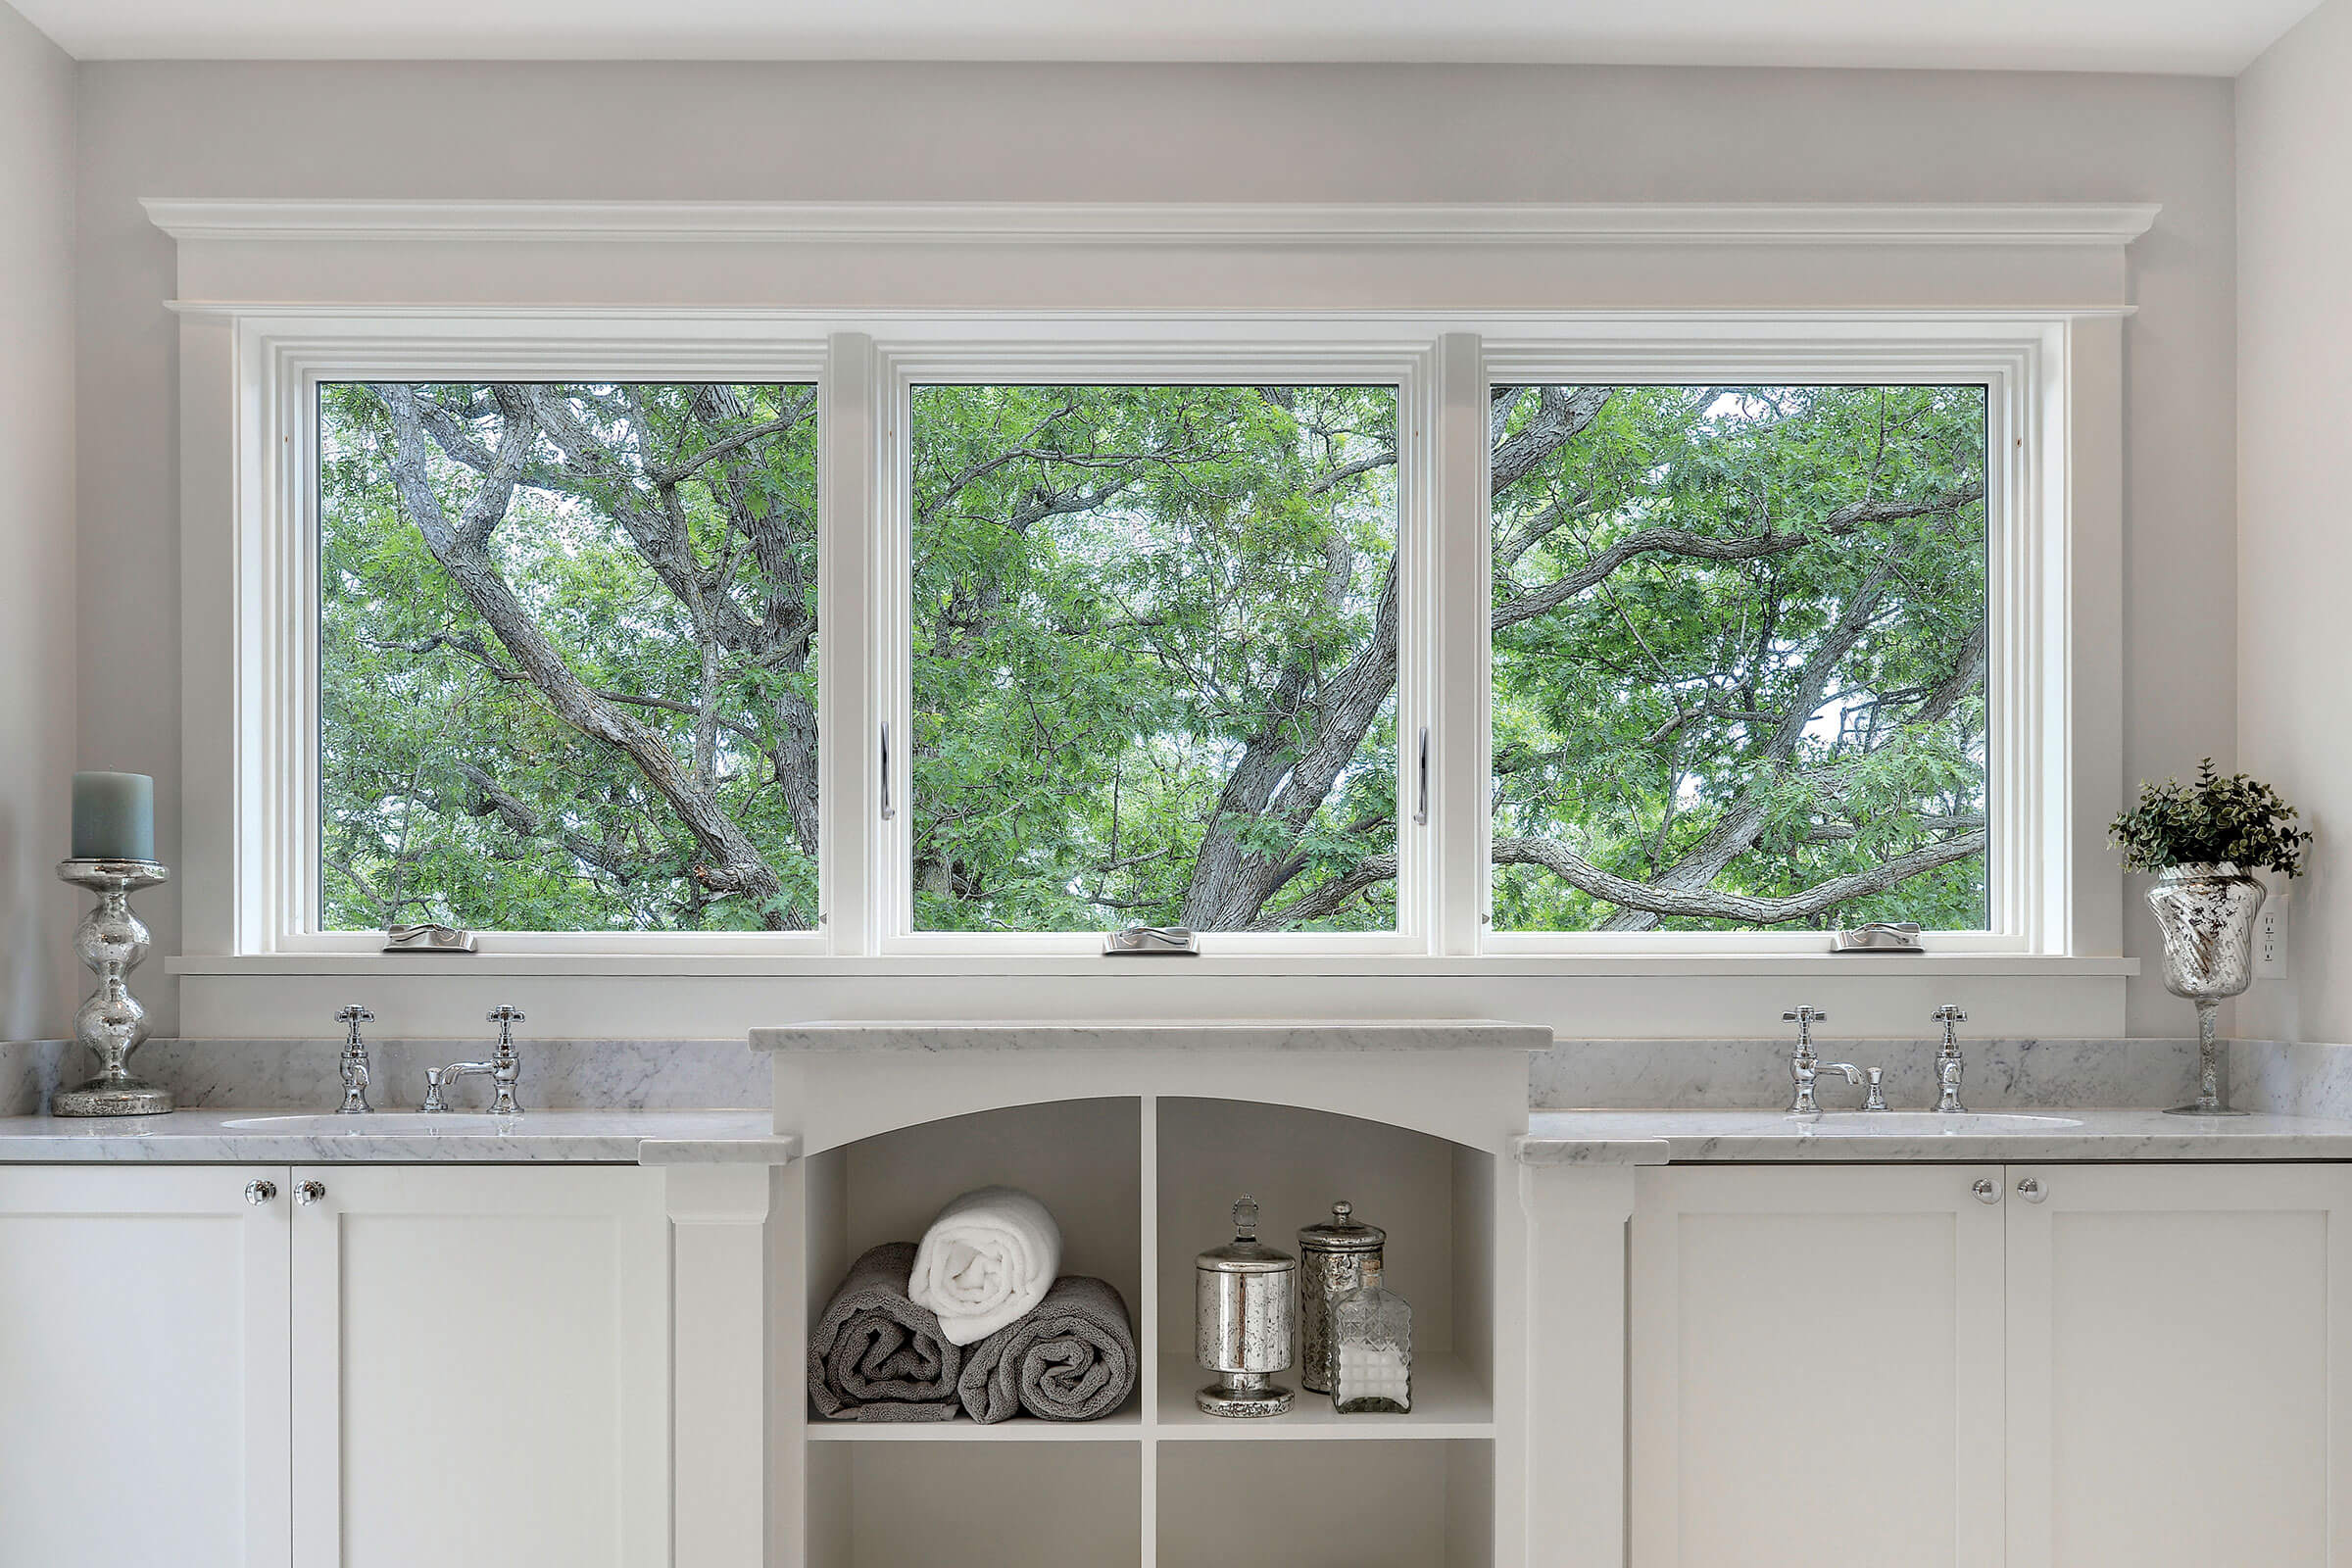 Bathroom With Marvin Elevate Awning Narrow Frame Window Above Sinks